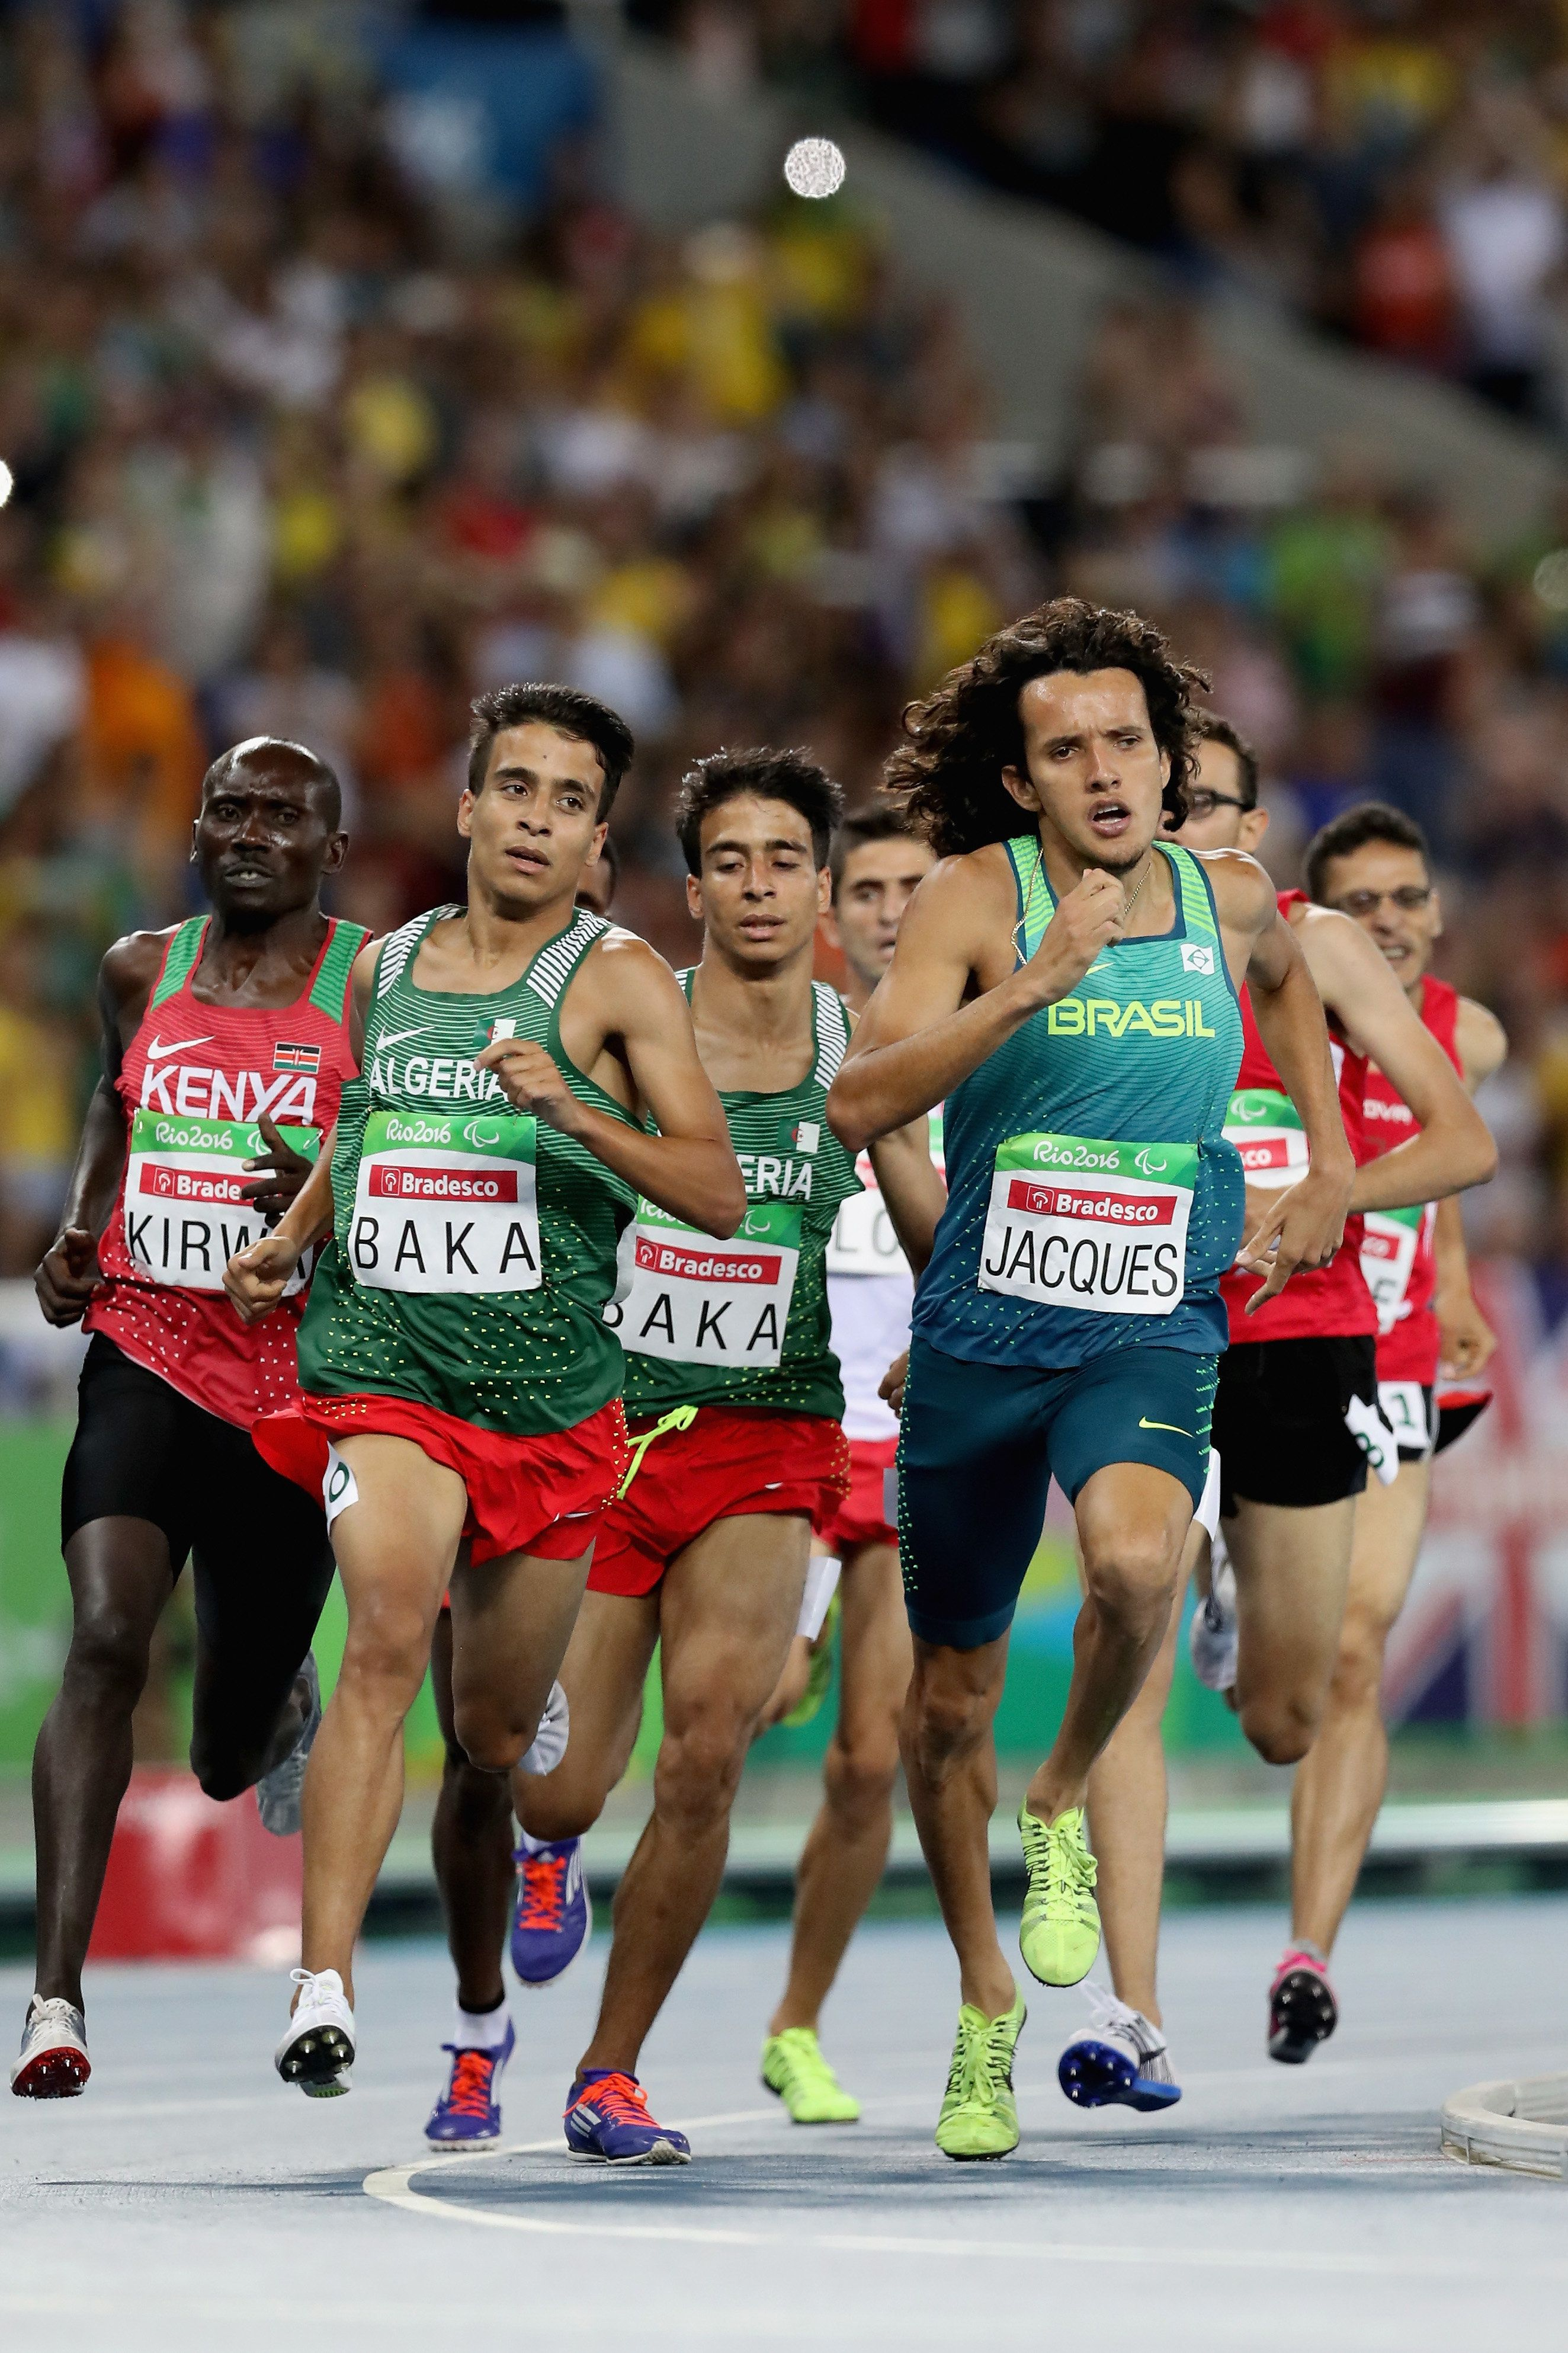 Abdellatif Baka of Algeria and Yeltsin Jacques of Brazil lead the pack in the men's 1500 meter T13 Final...